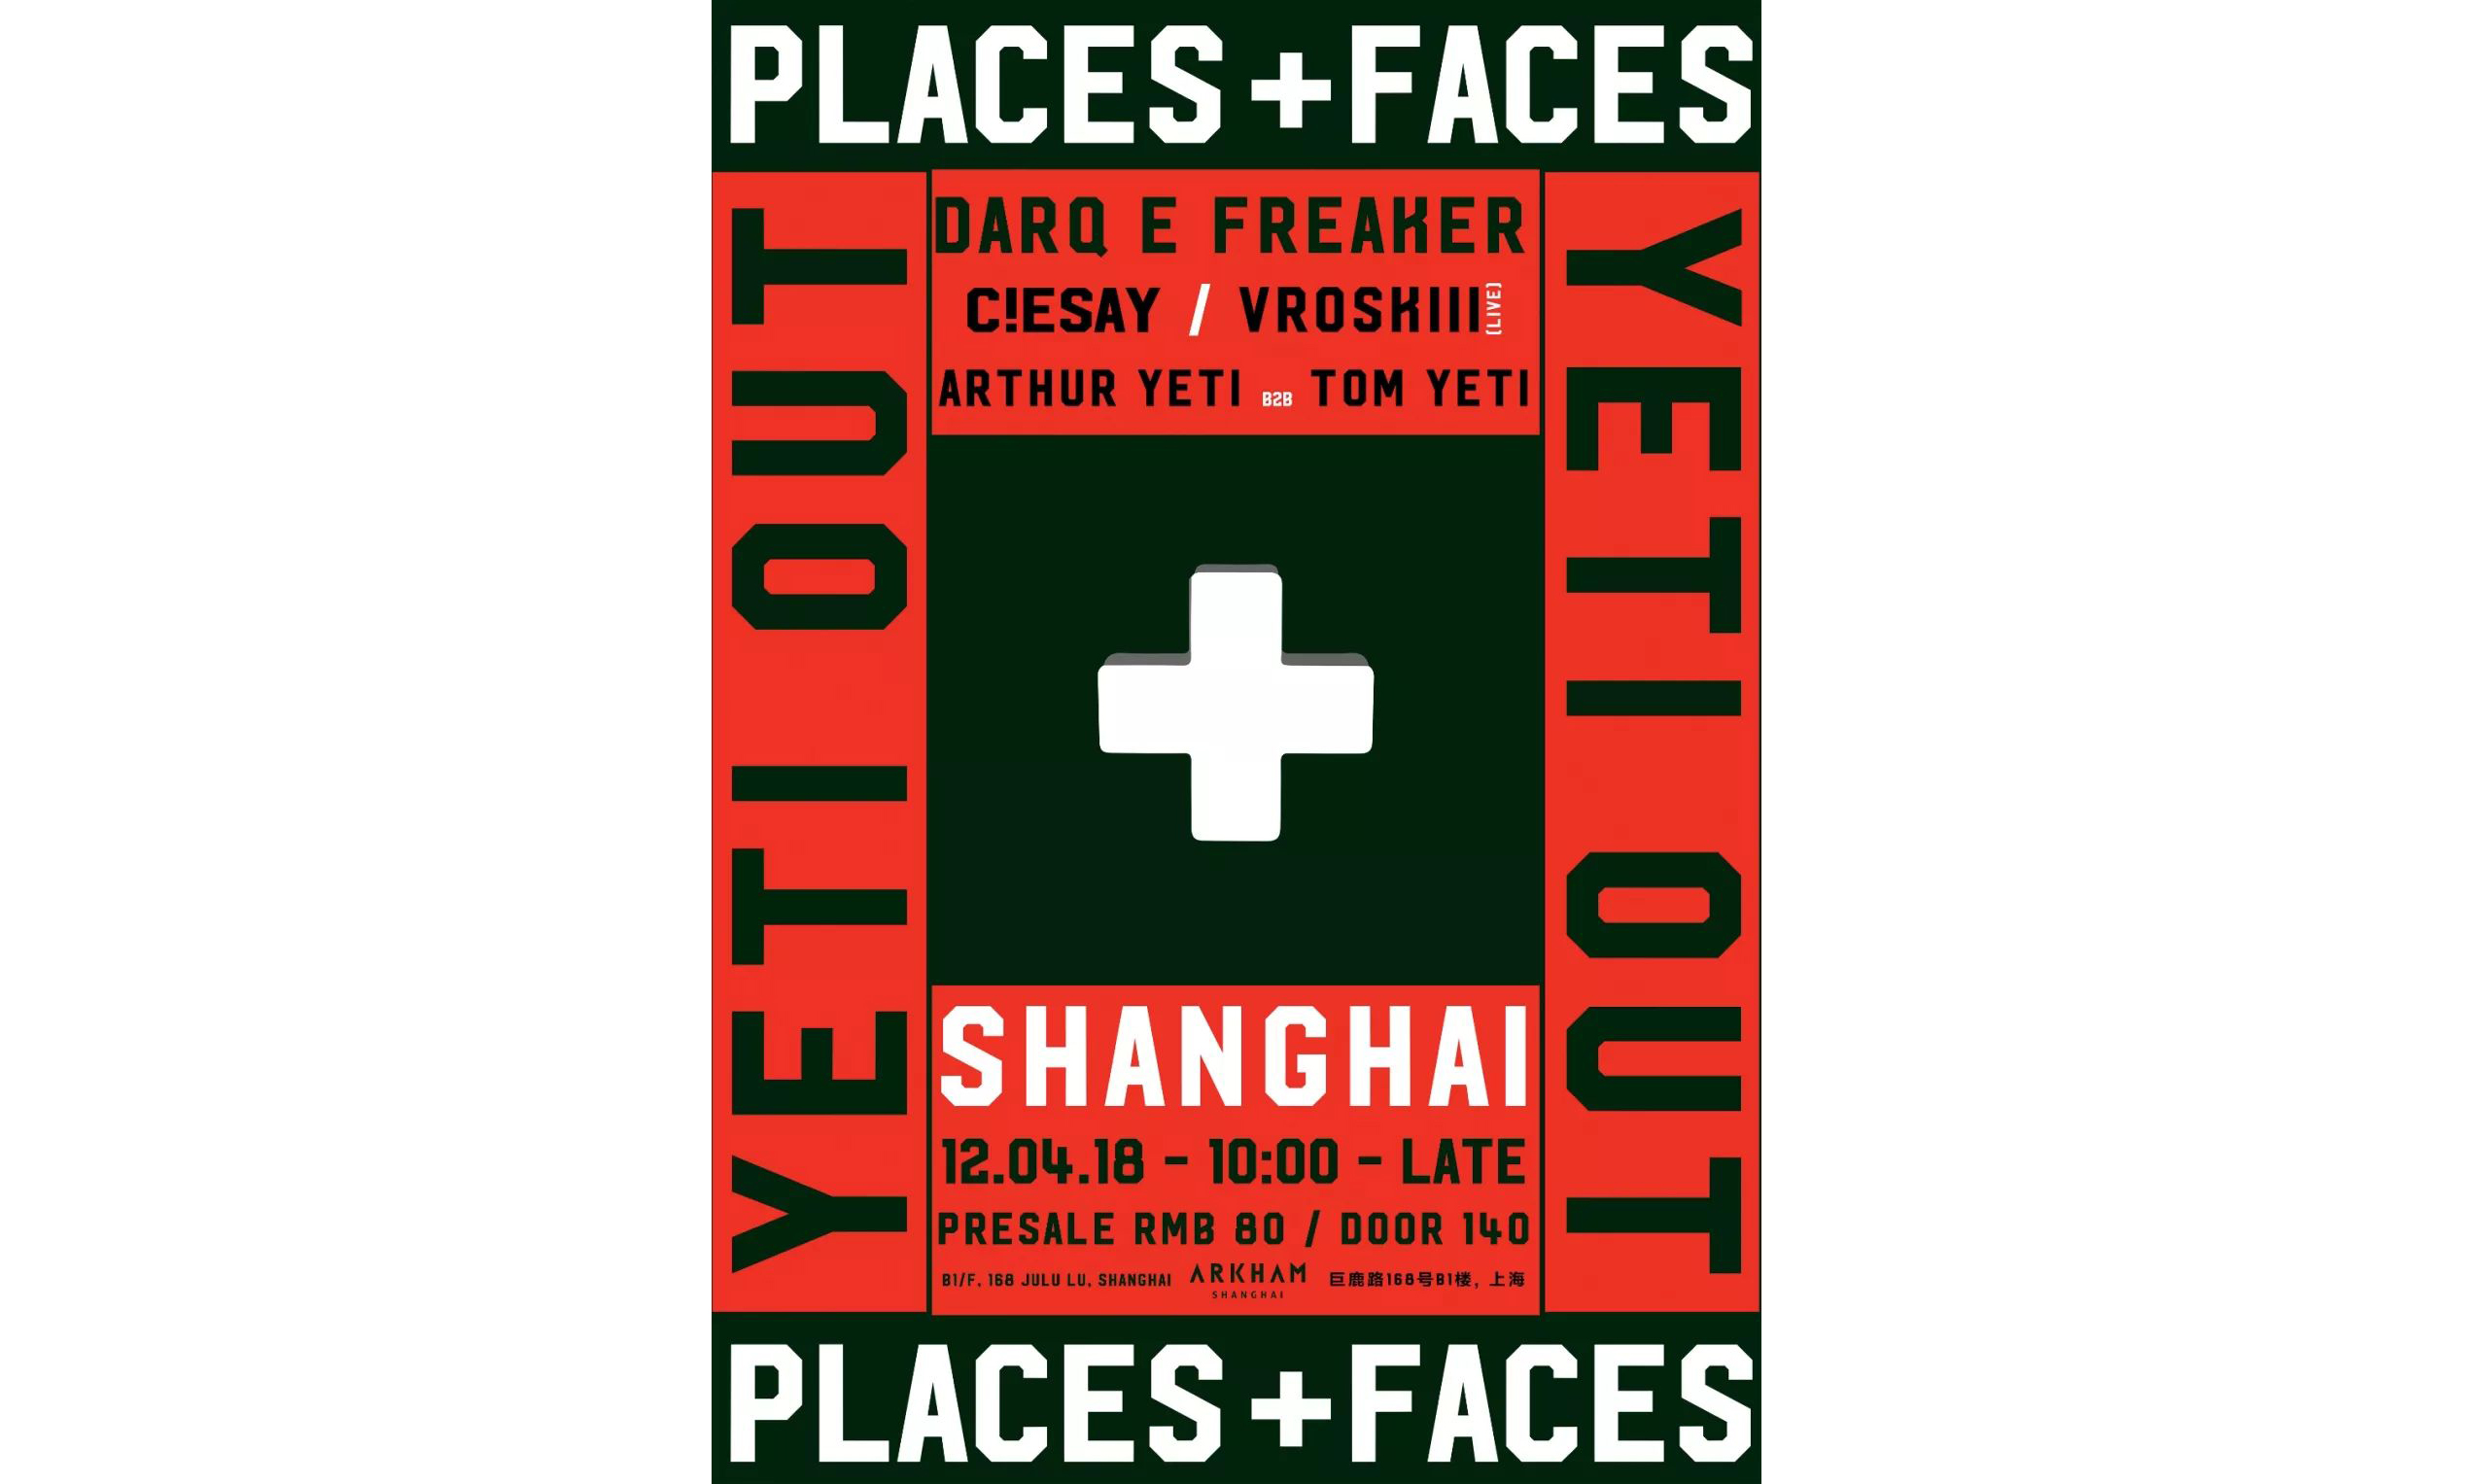 YETI OUT 携手 PLACES + FACES 于上海举行音乐派对